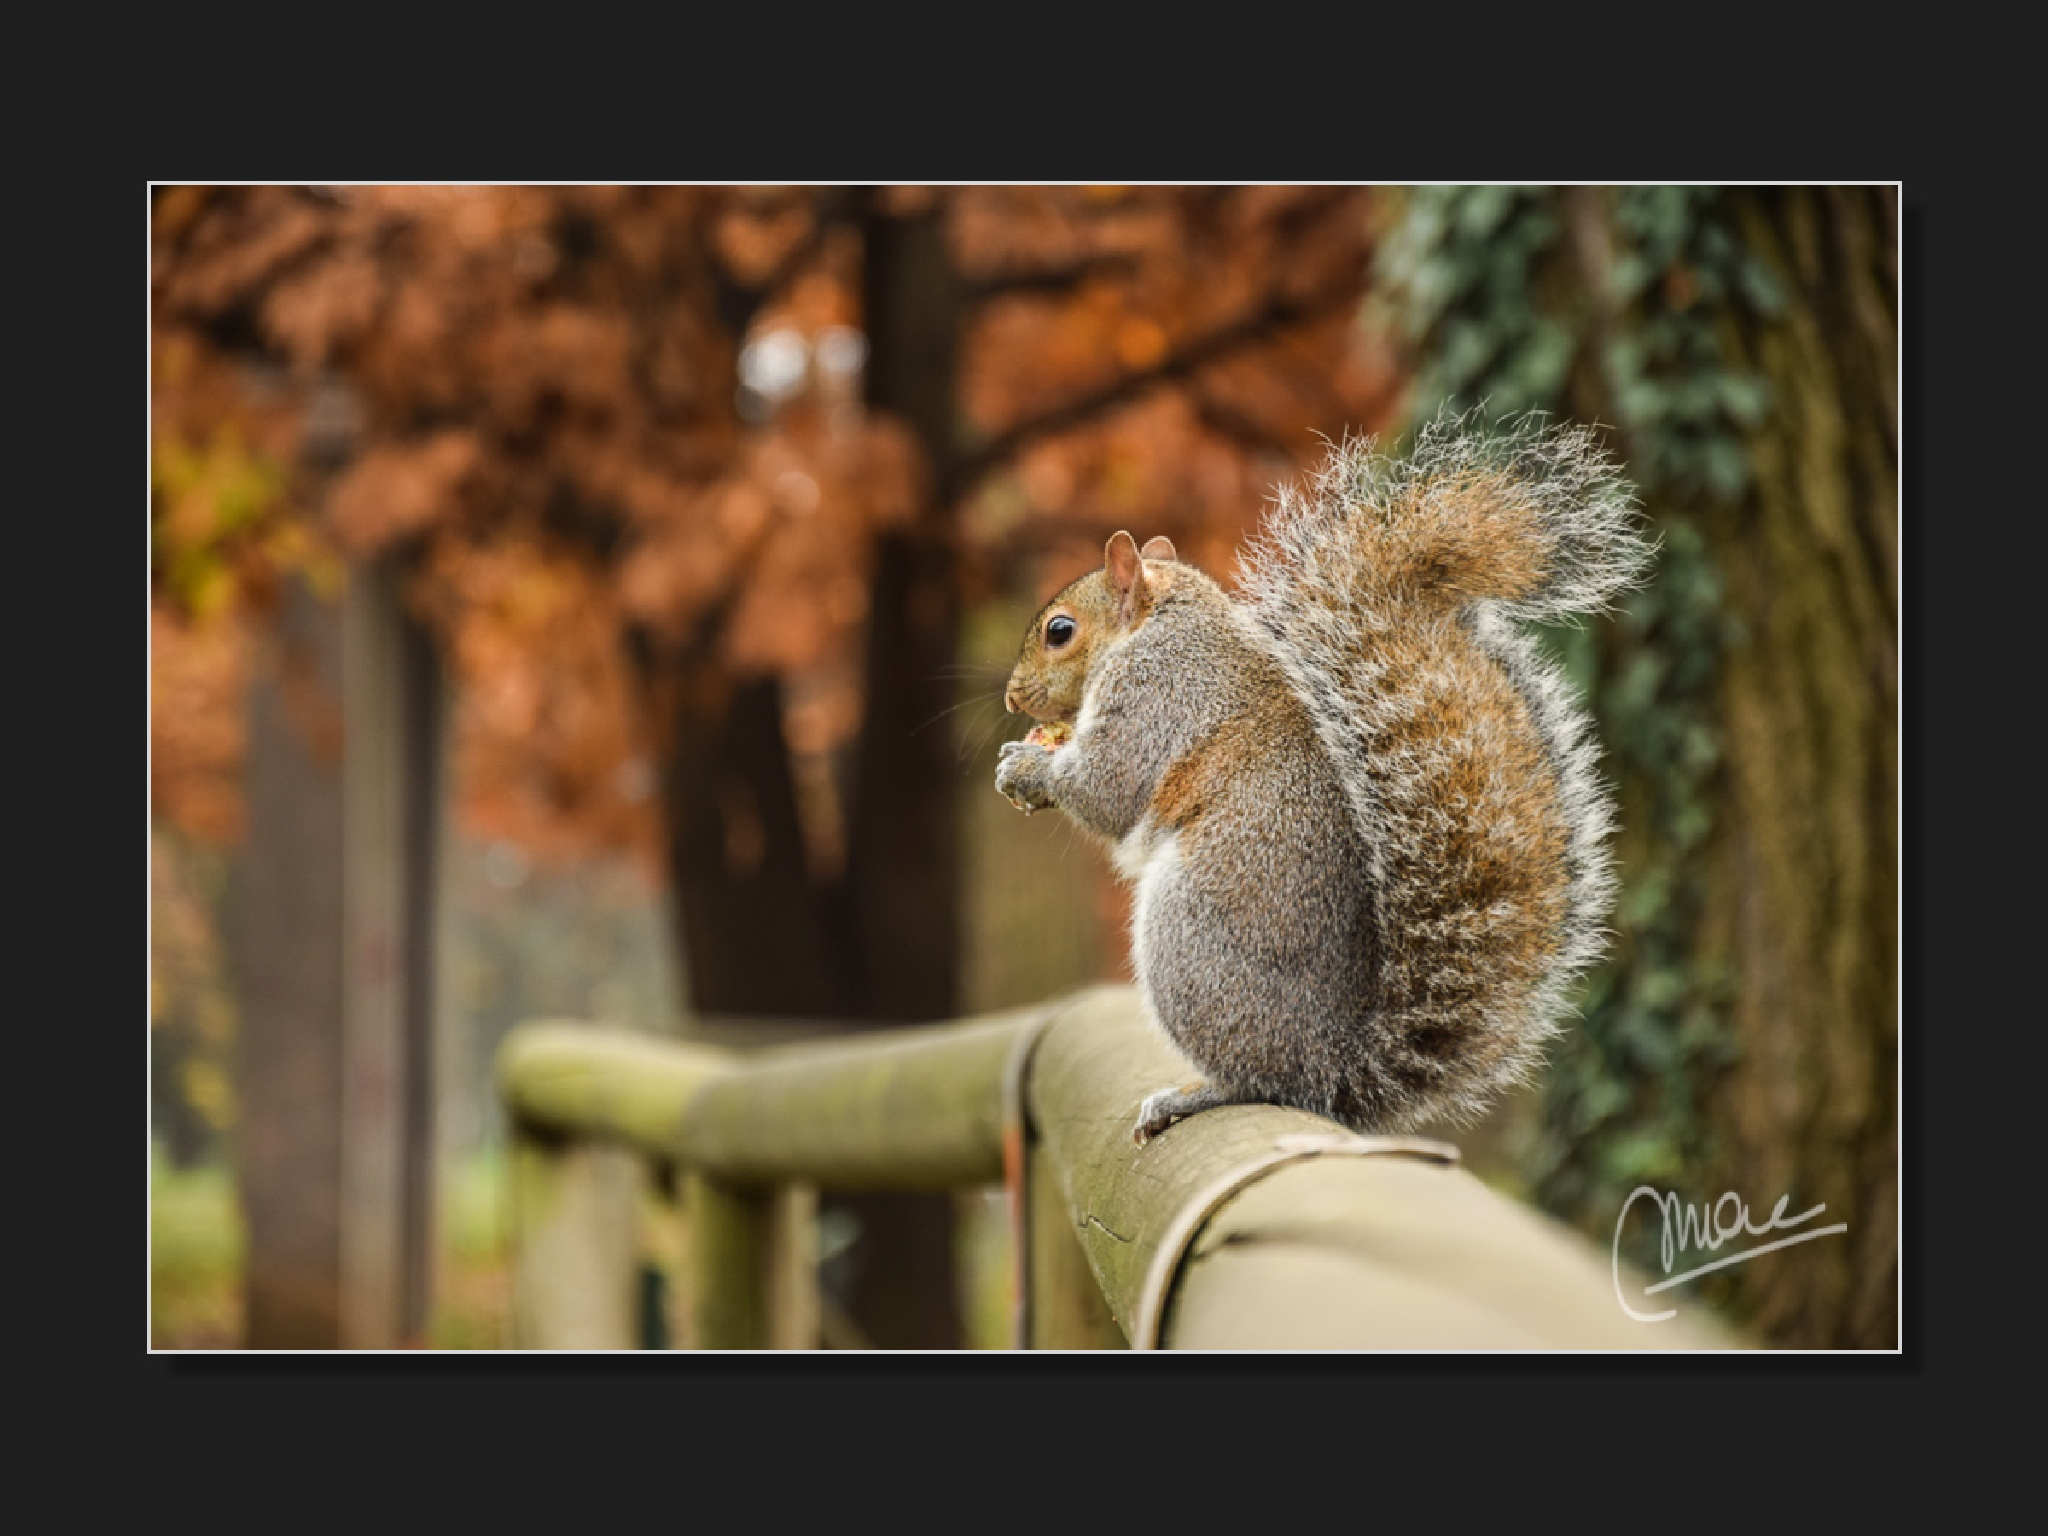 Eating squirrel by Marco Andreazza